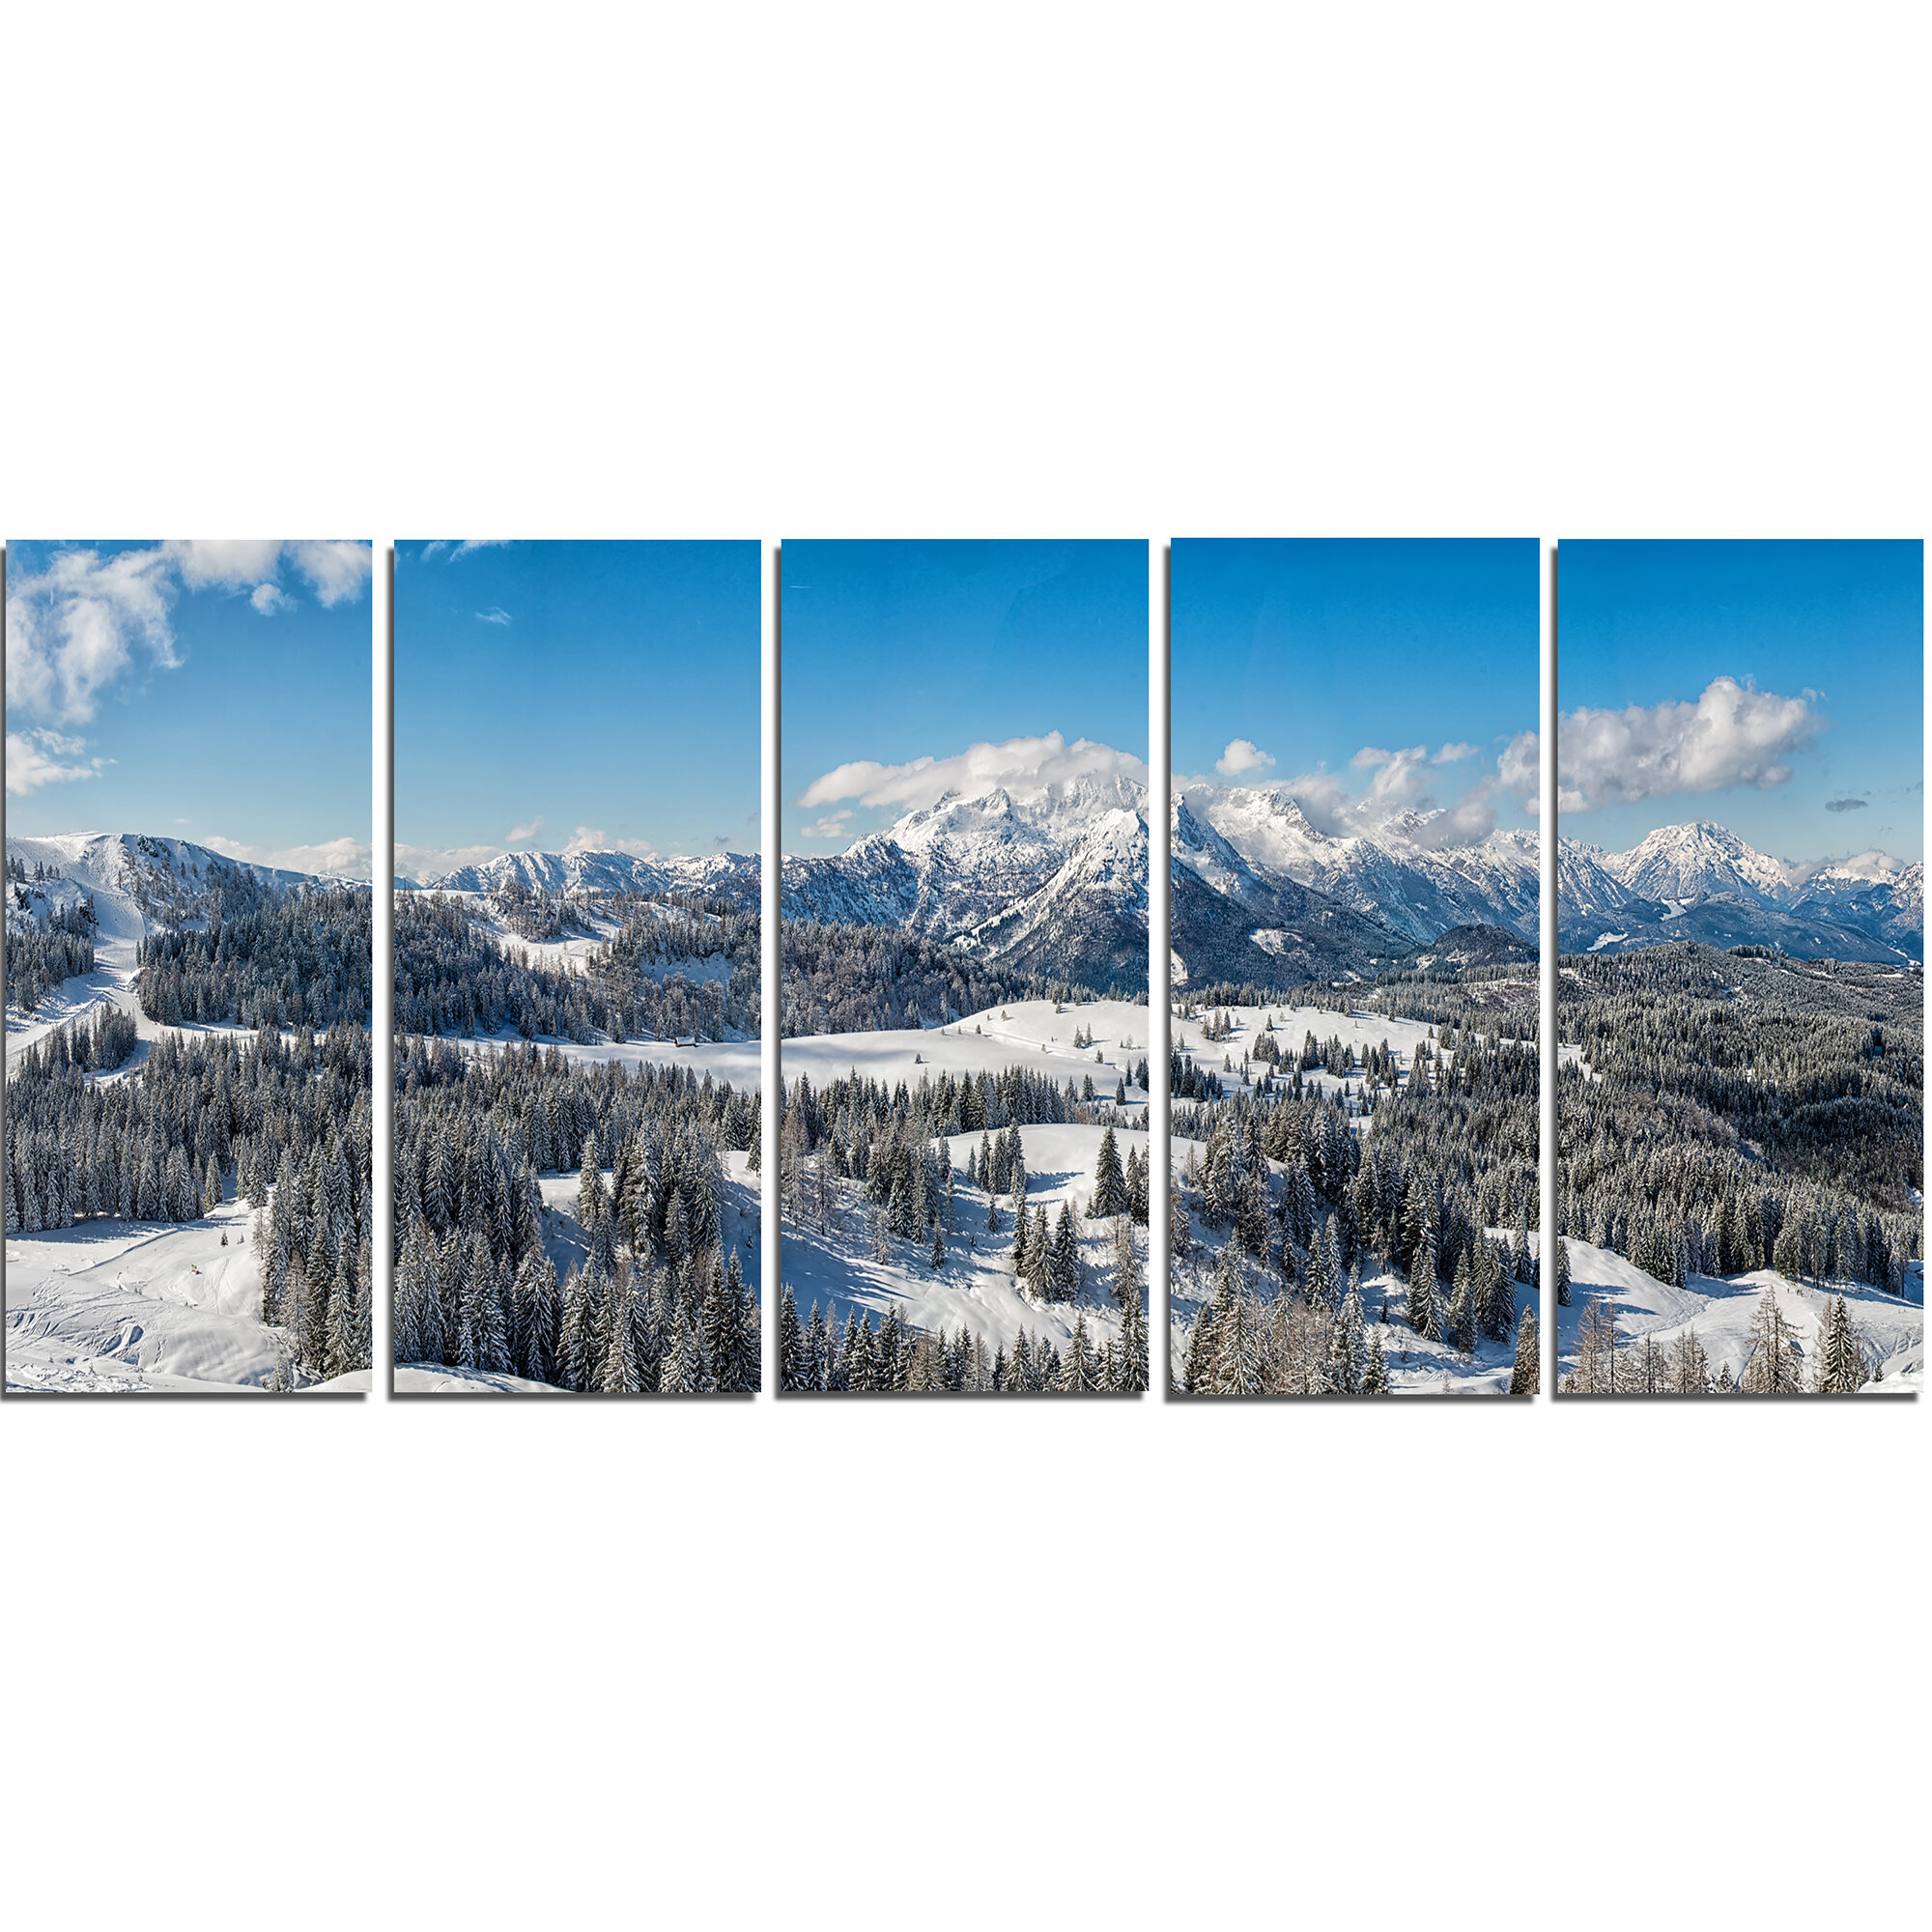 Austrian Alps Winter Panorama 3 Piece Graphic Art On Wrapped Canvas Set